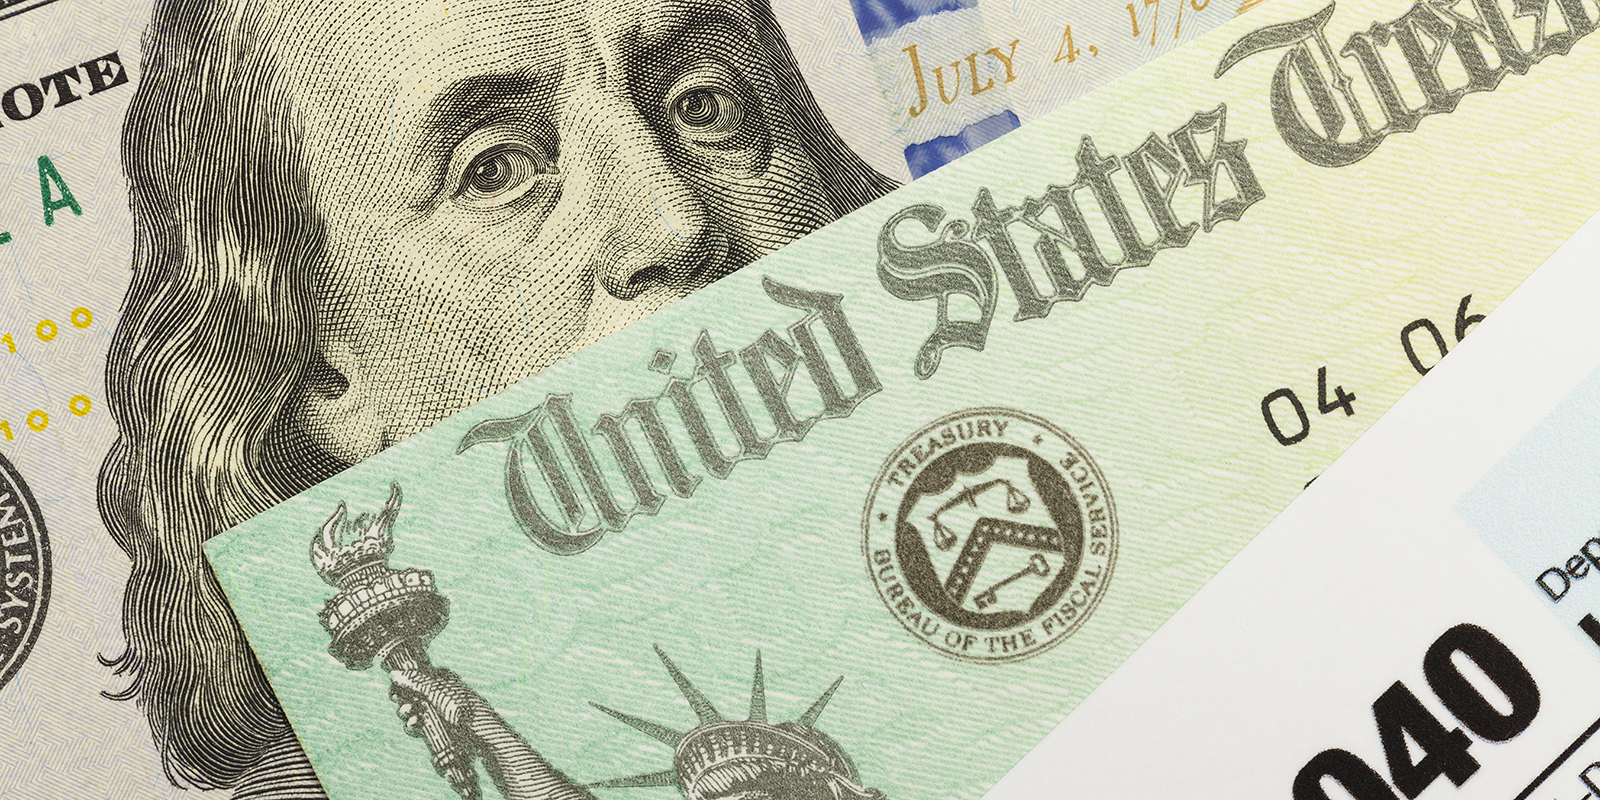 Unclaimed Economic Stimulus Payment Applications Due October 15, 2020